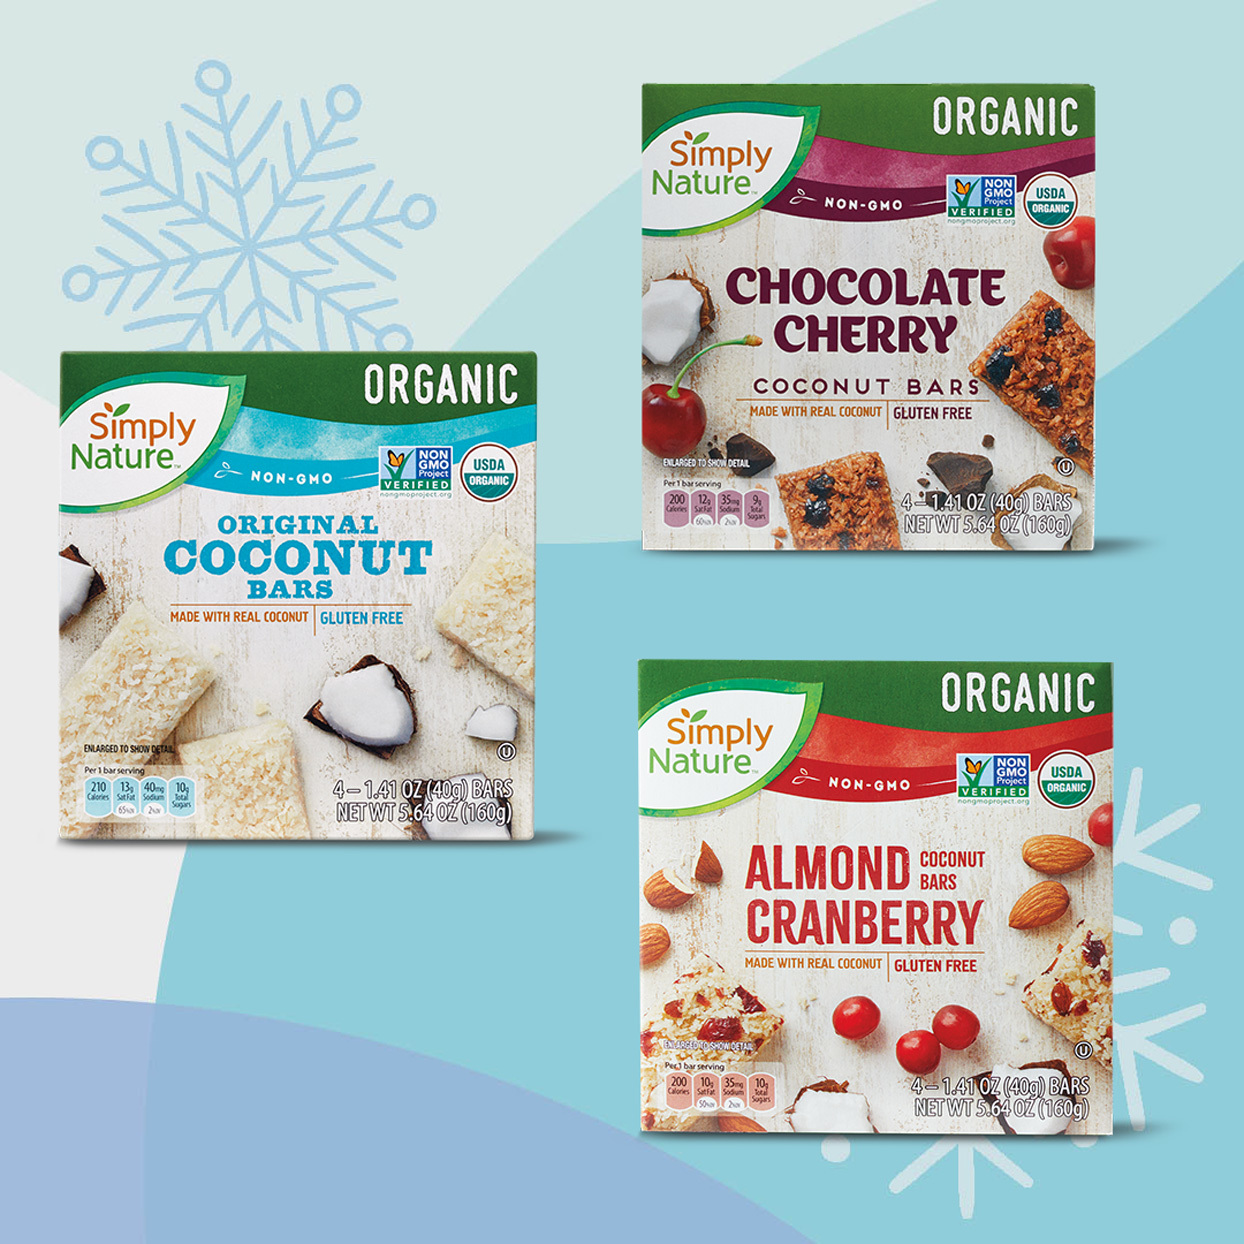 Simply Nature Organic Coconut Bars